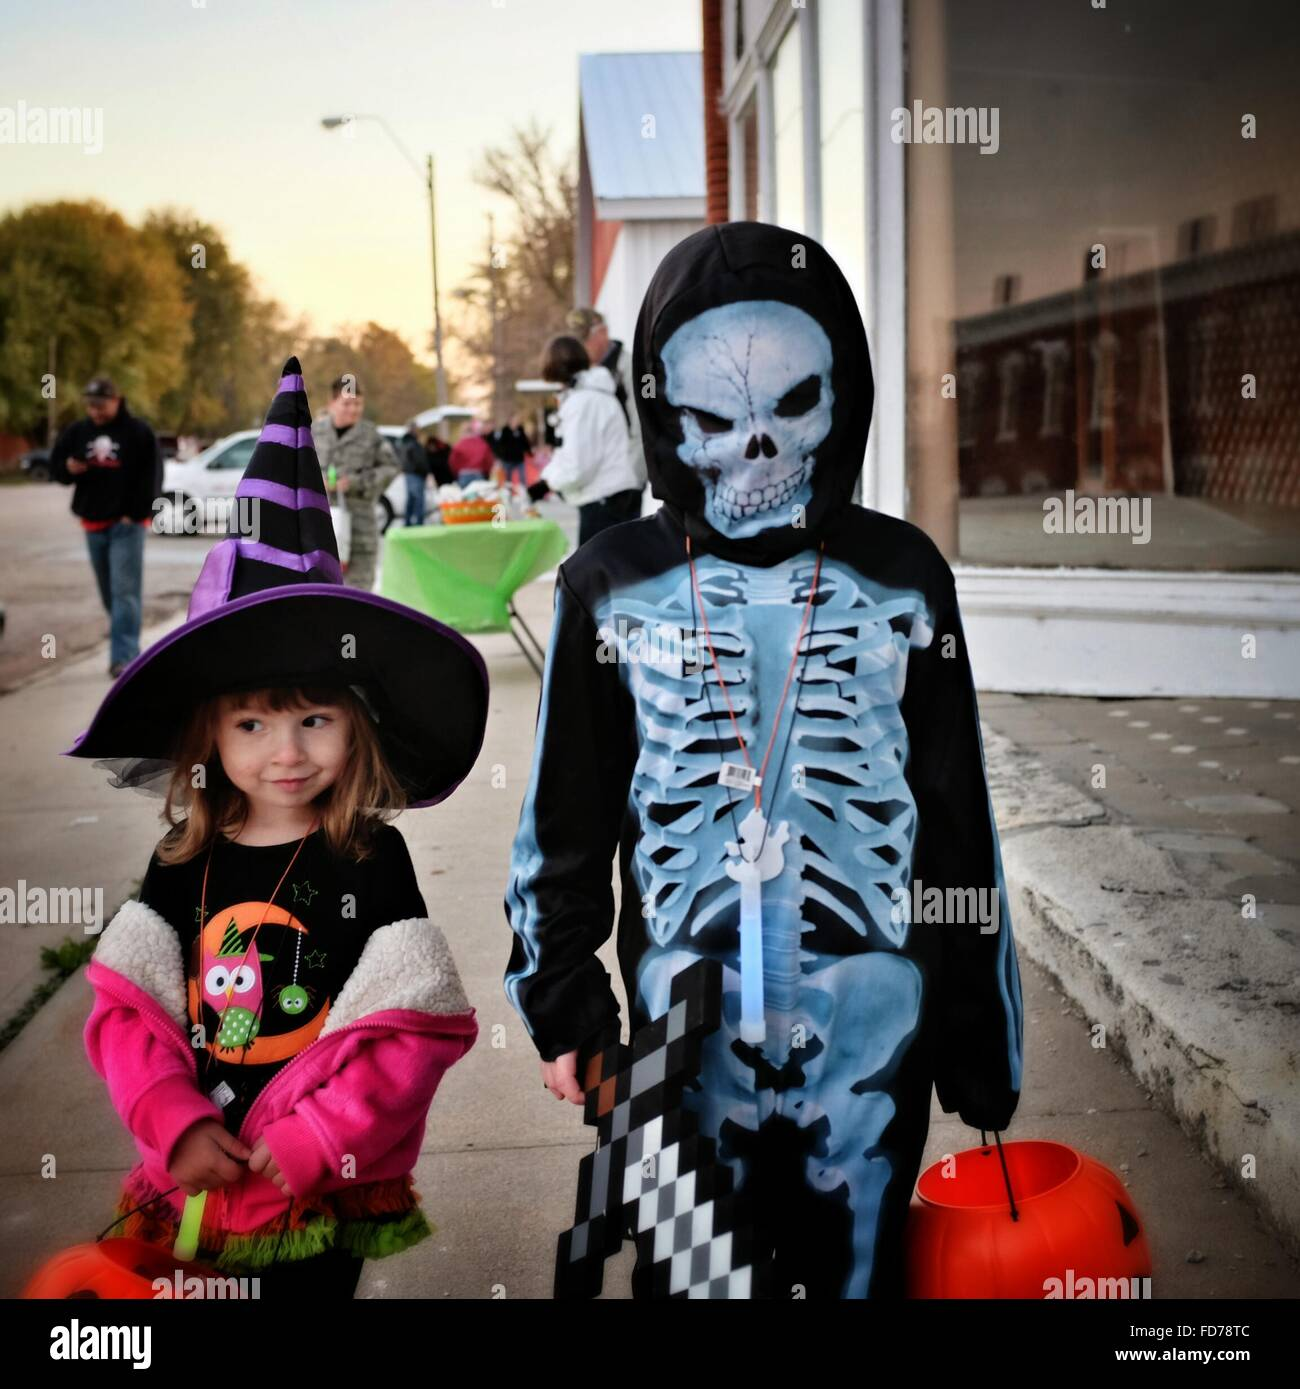 Person In Monster Costume Standing By Cute Girl On Footpath During Halloween Stock Photo